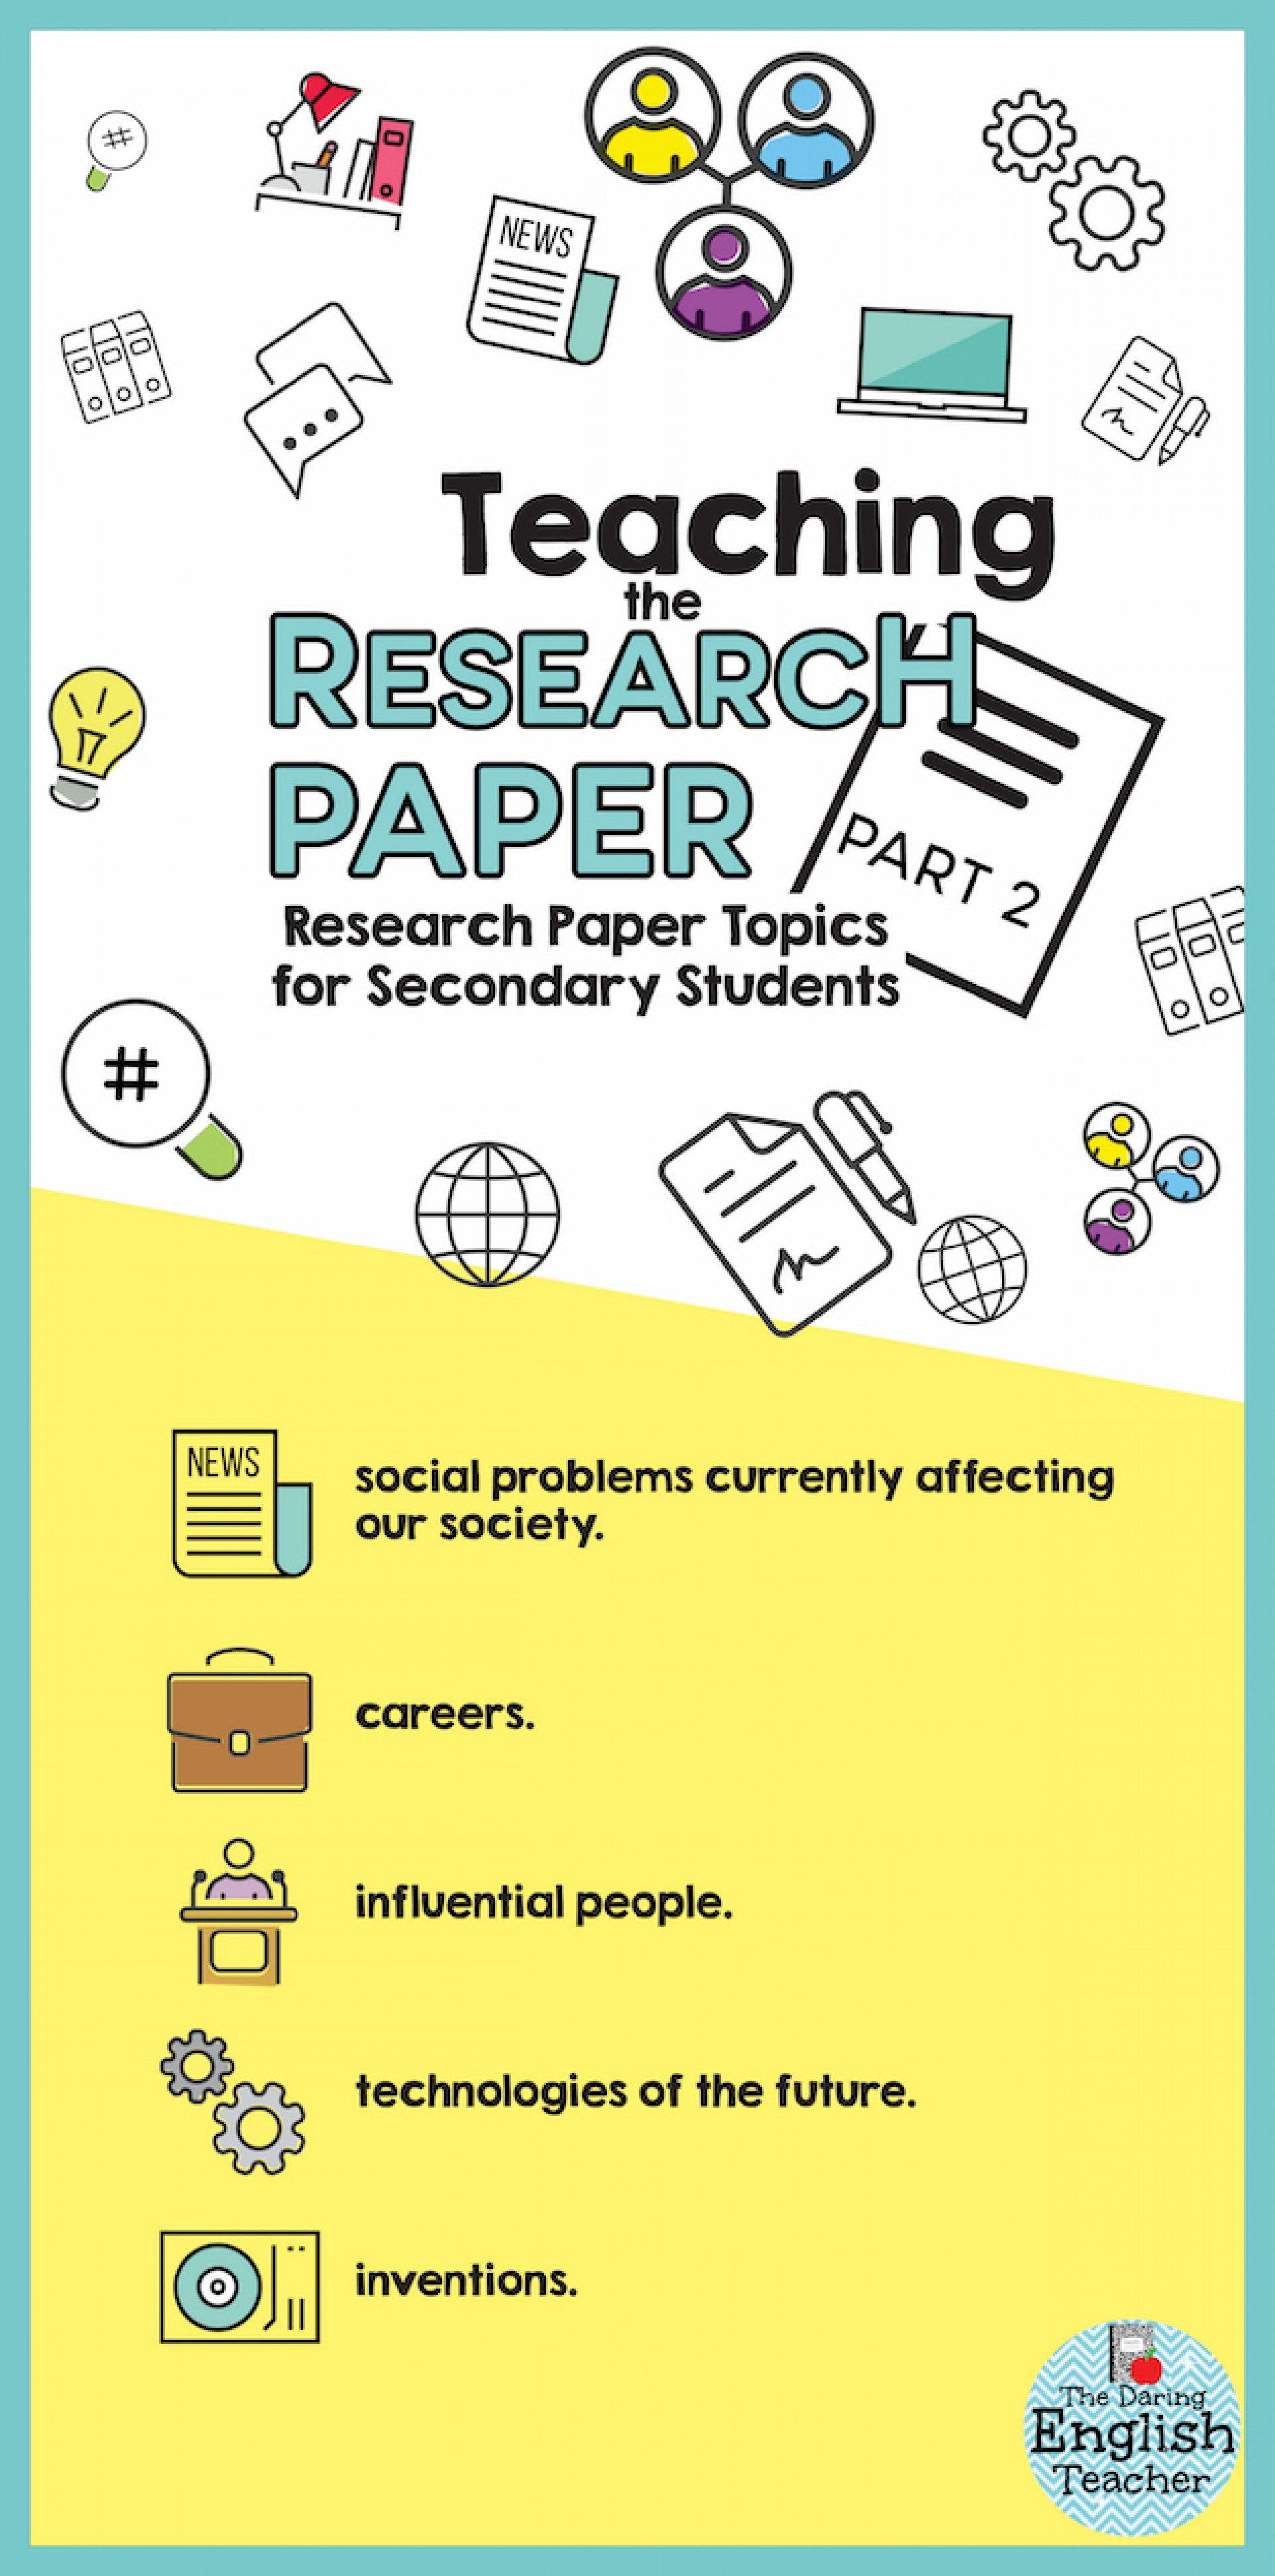 020 Infographic2bp22b2 Research Paper Topic For Unusual A Topics In Developmental Psychology On Education Frankenstein 1920